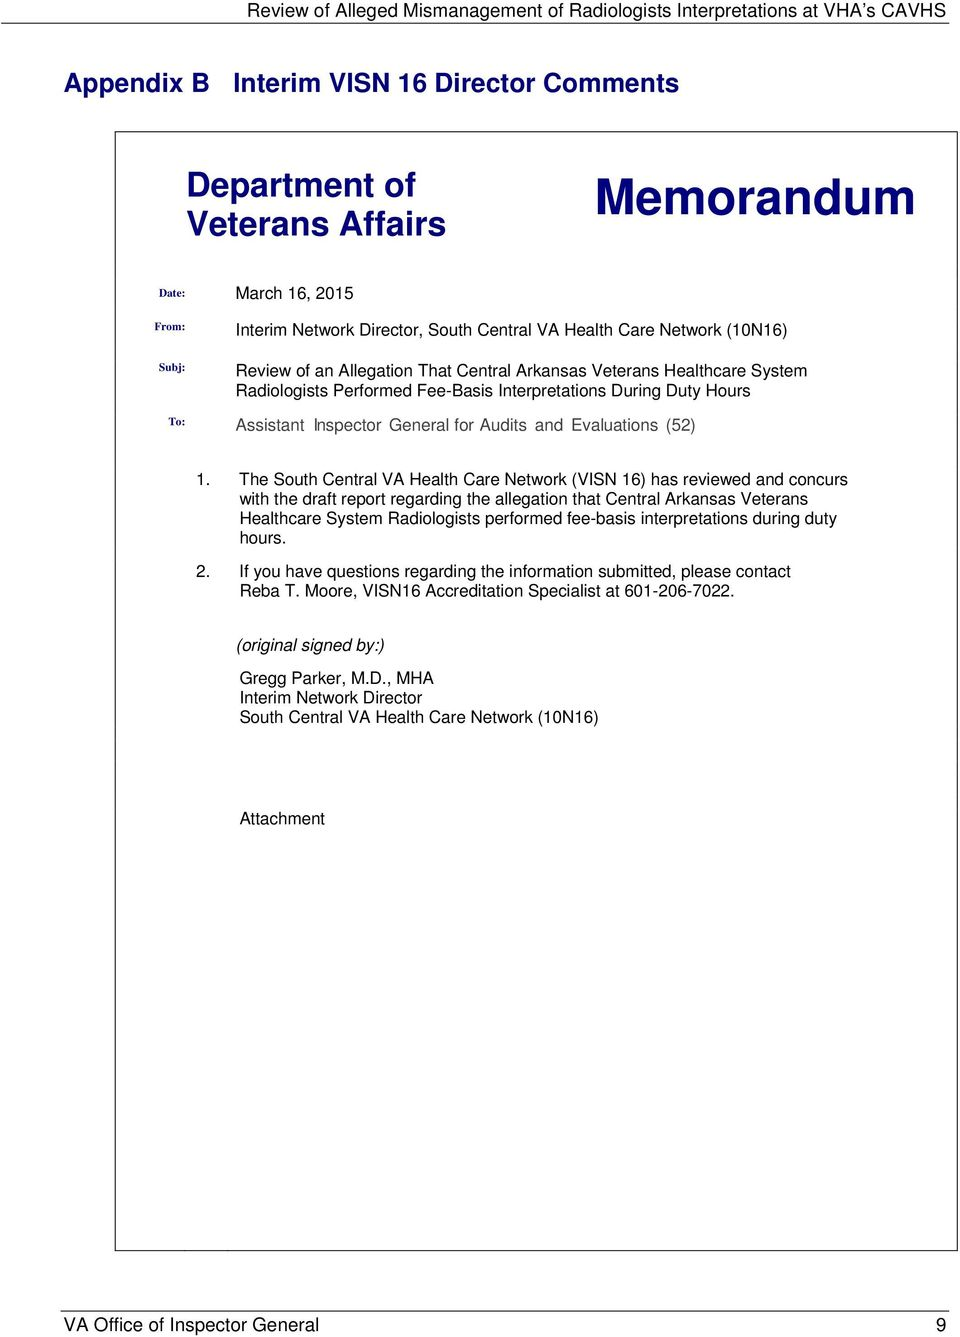 The South Central VA Health Care Network (VISN 16) has reviewed and concurs with the draft report regarding the allegation that Central Arkansas Veterans Healthcare System Radiologists performed